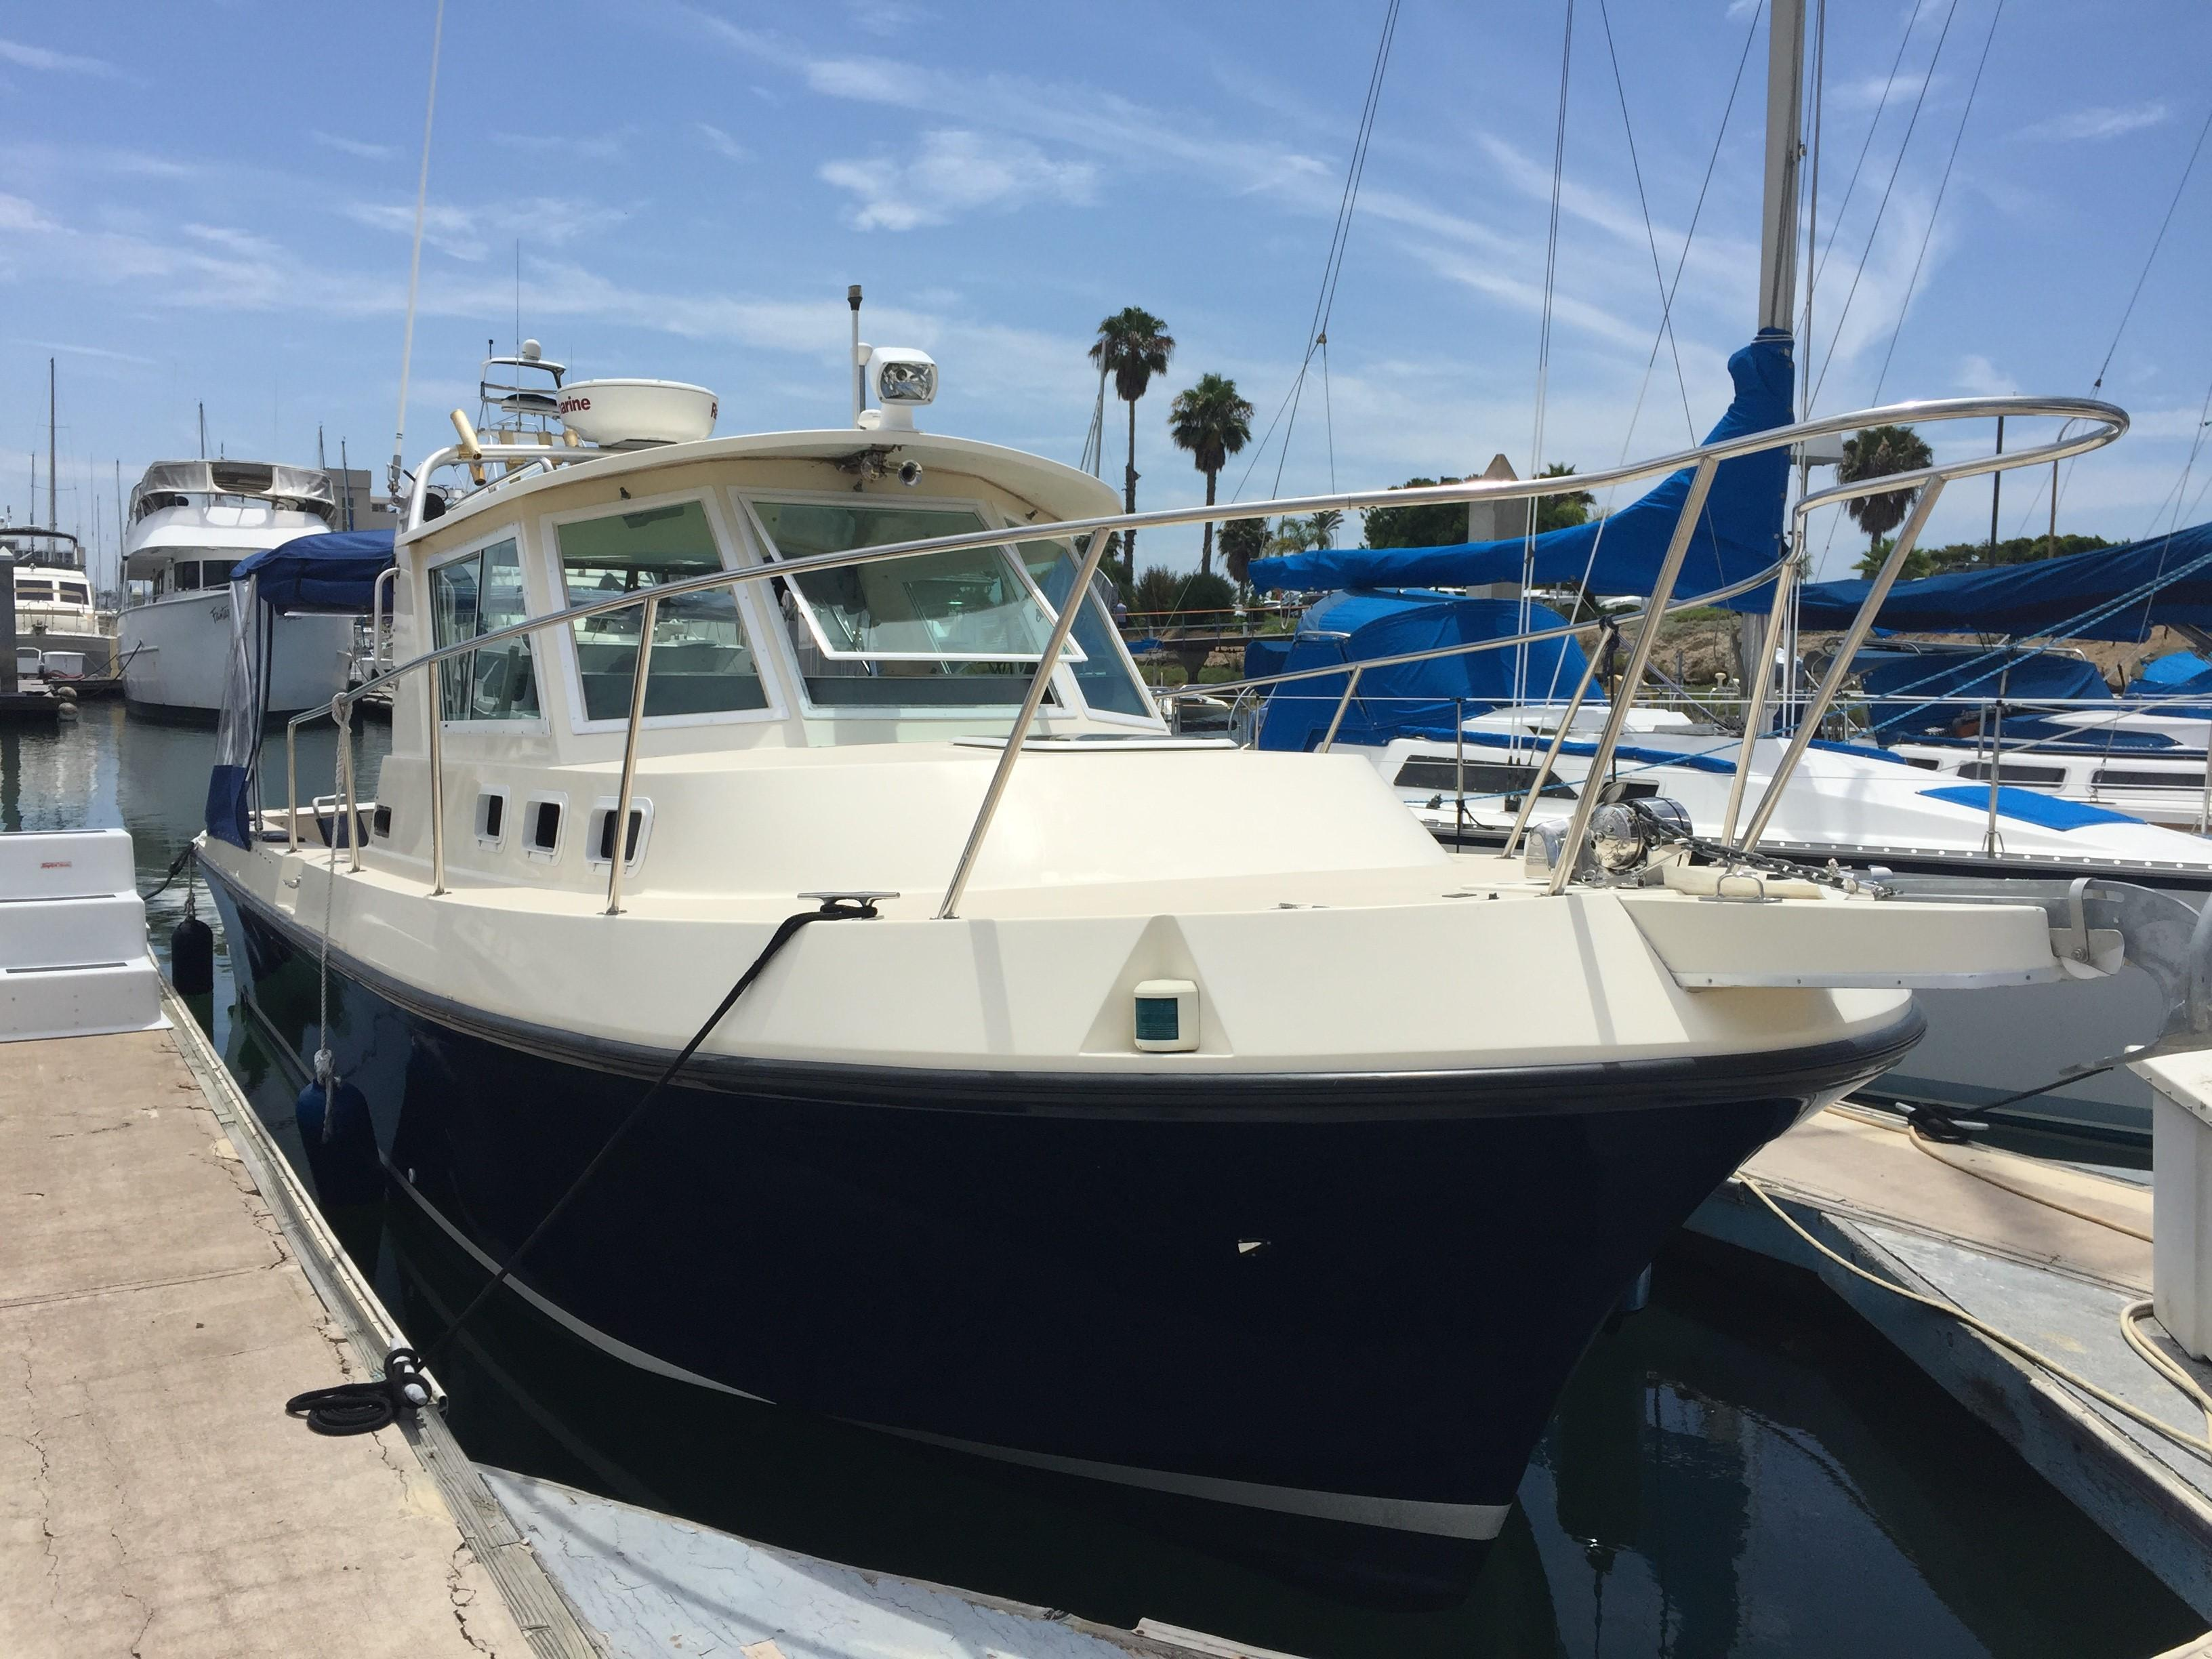 1998 Albin Tournament Power Boat For Sale Www Yachtworld Com